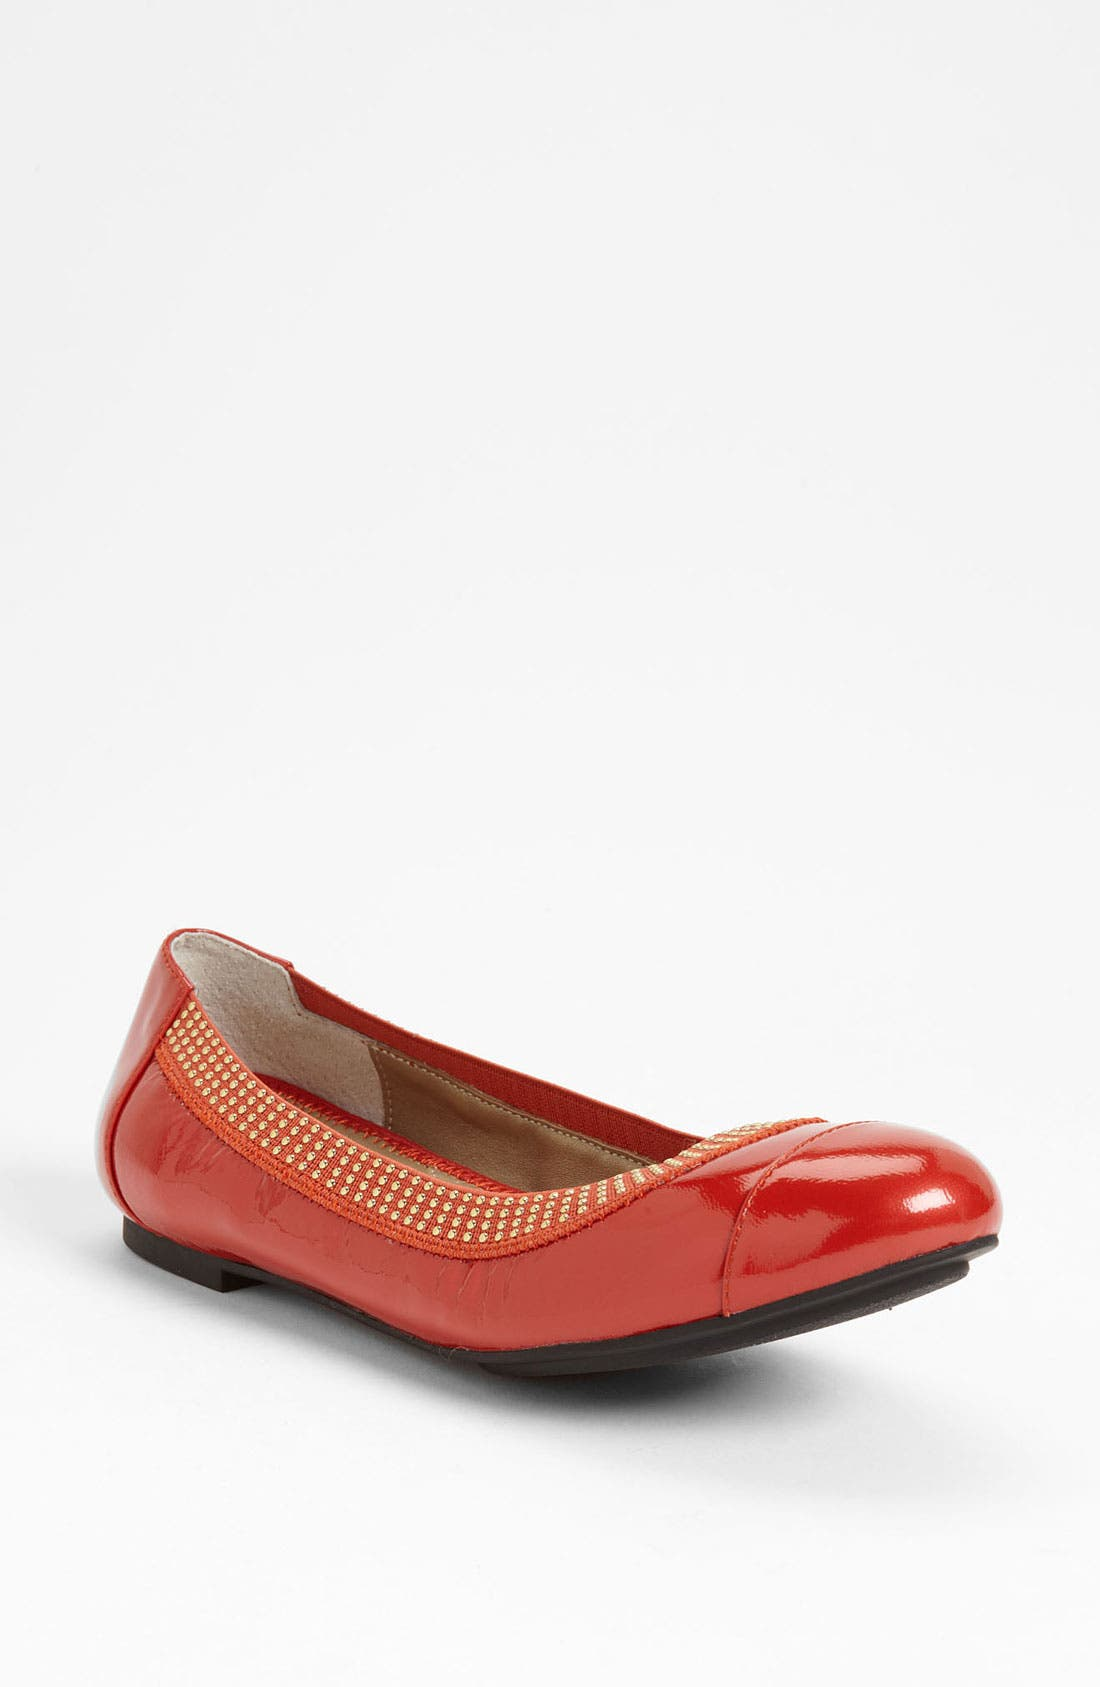 Main Image - Me Too 'Kailani' Flat (Special Purchase)